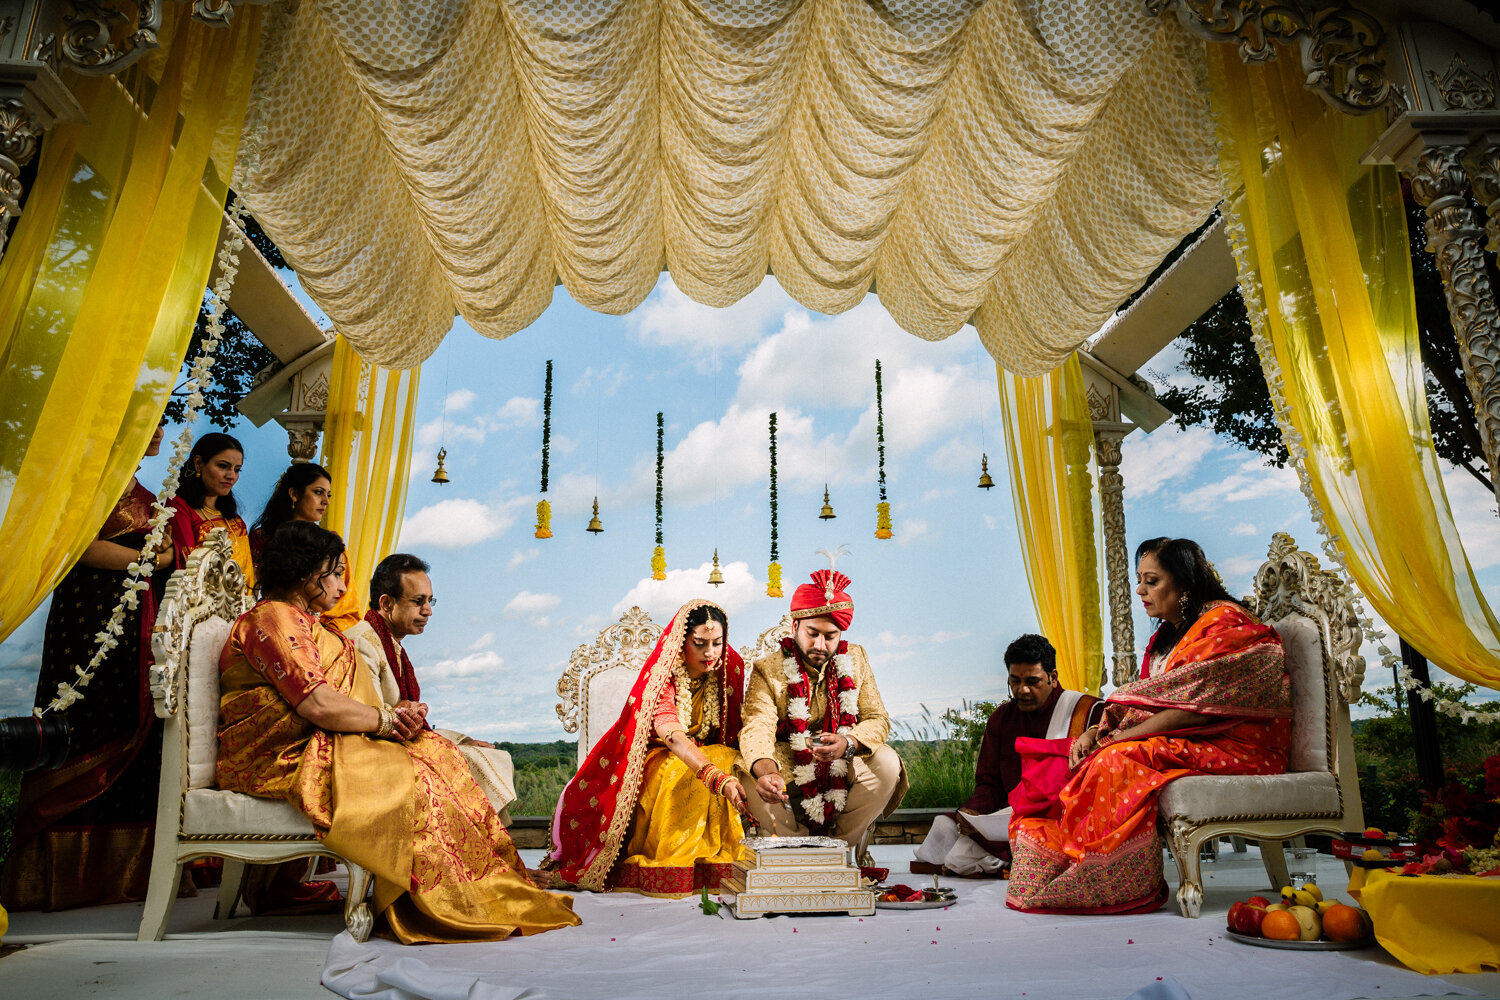 austin-texas-indian-wedding-photographer-edward-bennett-43.jpg